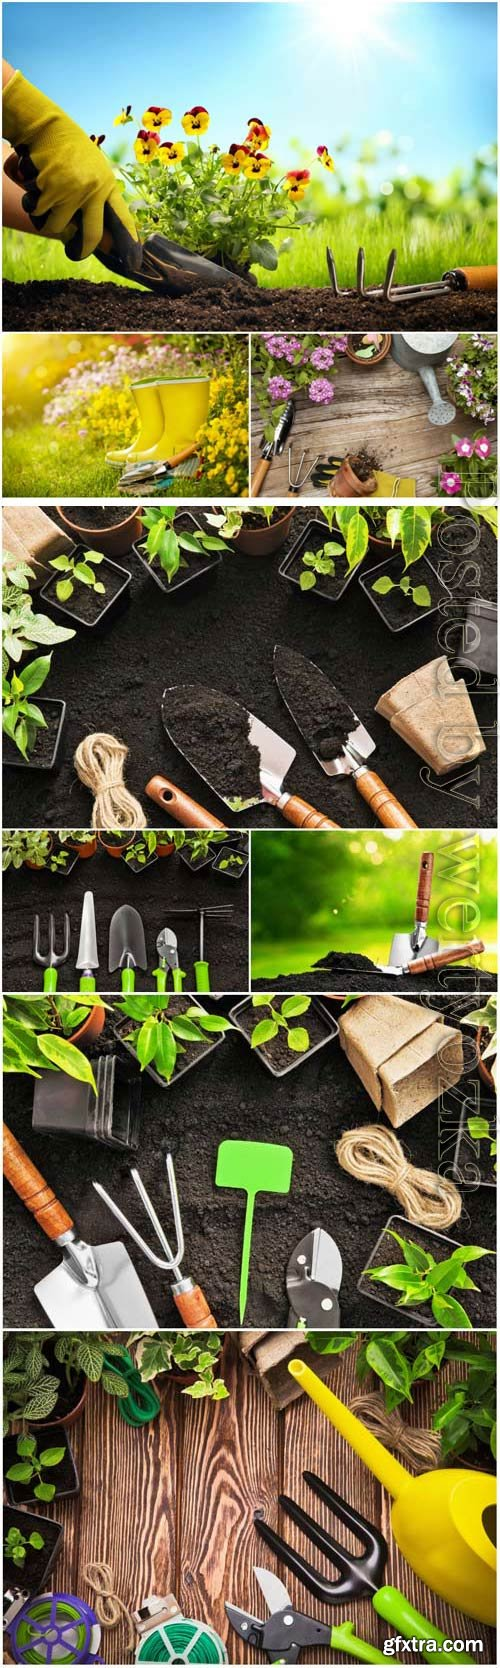 Gardening, tools to care for flowers and trees stock photo